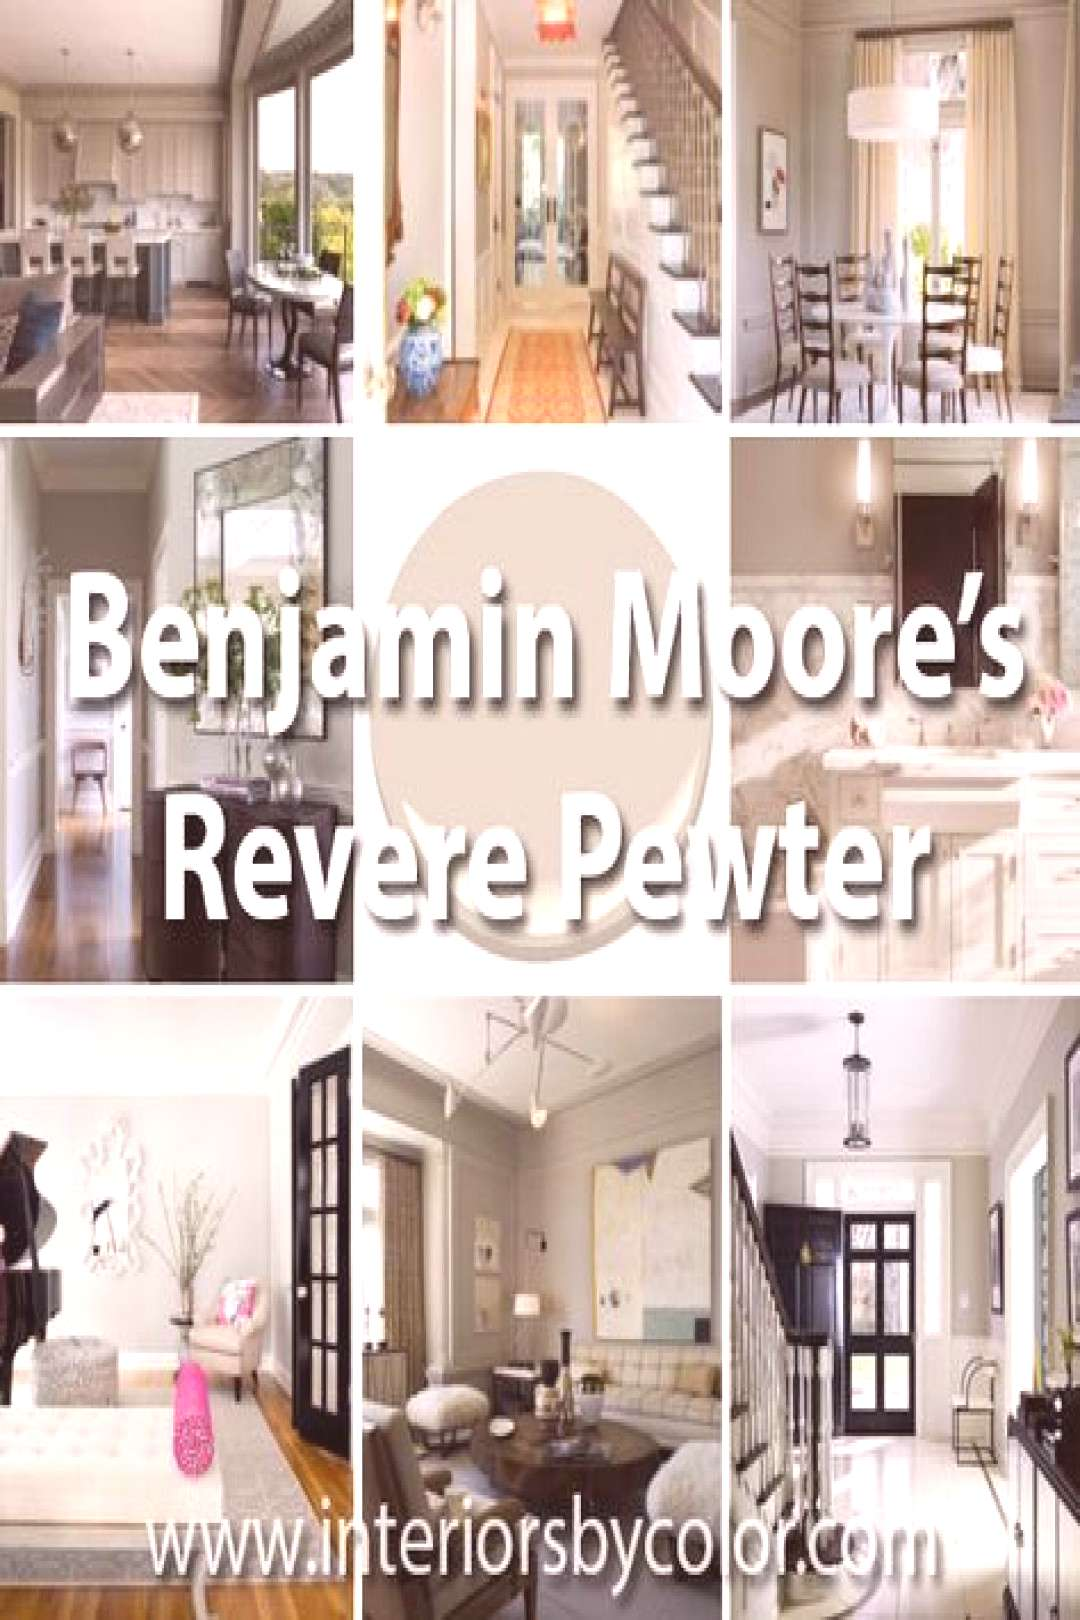 One of the most popular gray paint colors world wide; Benjamin Moore Revere Pewter is described by